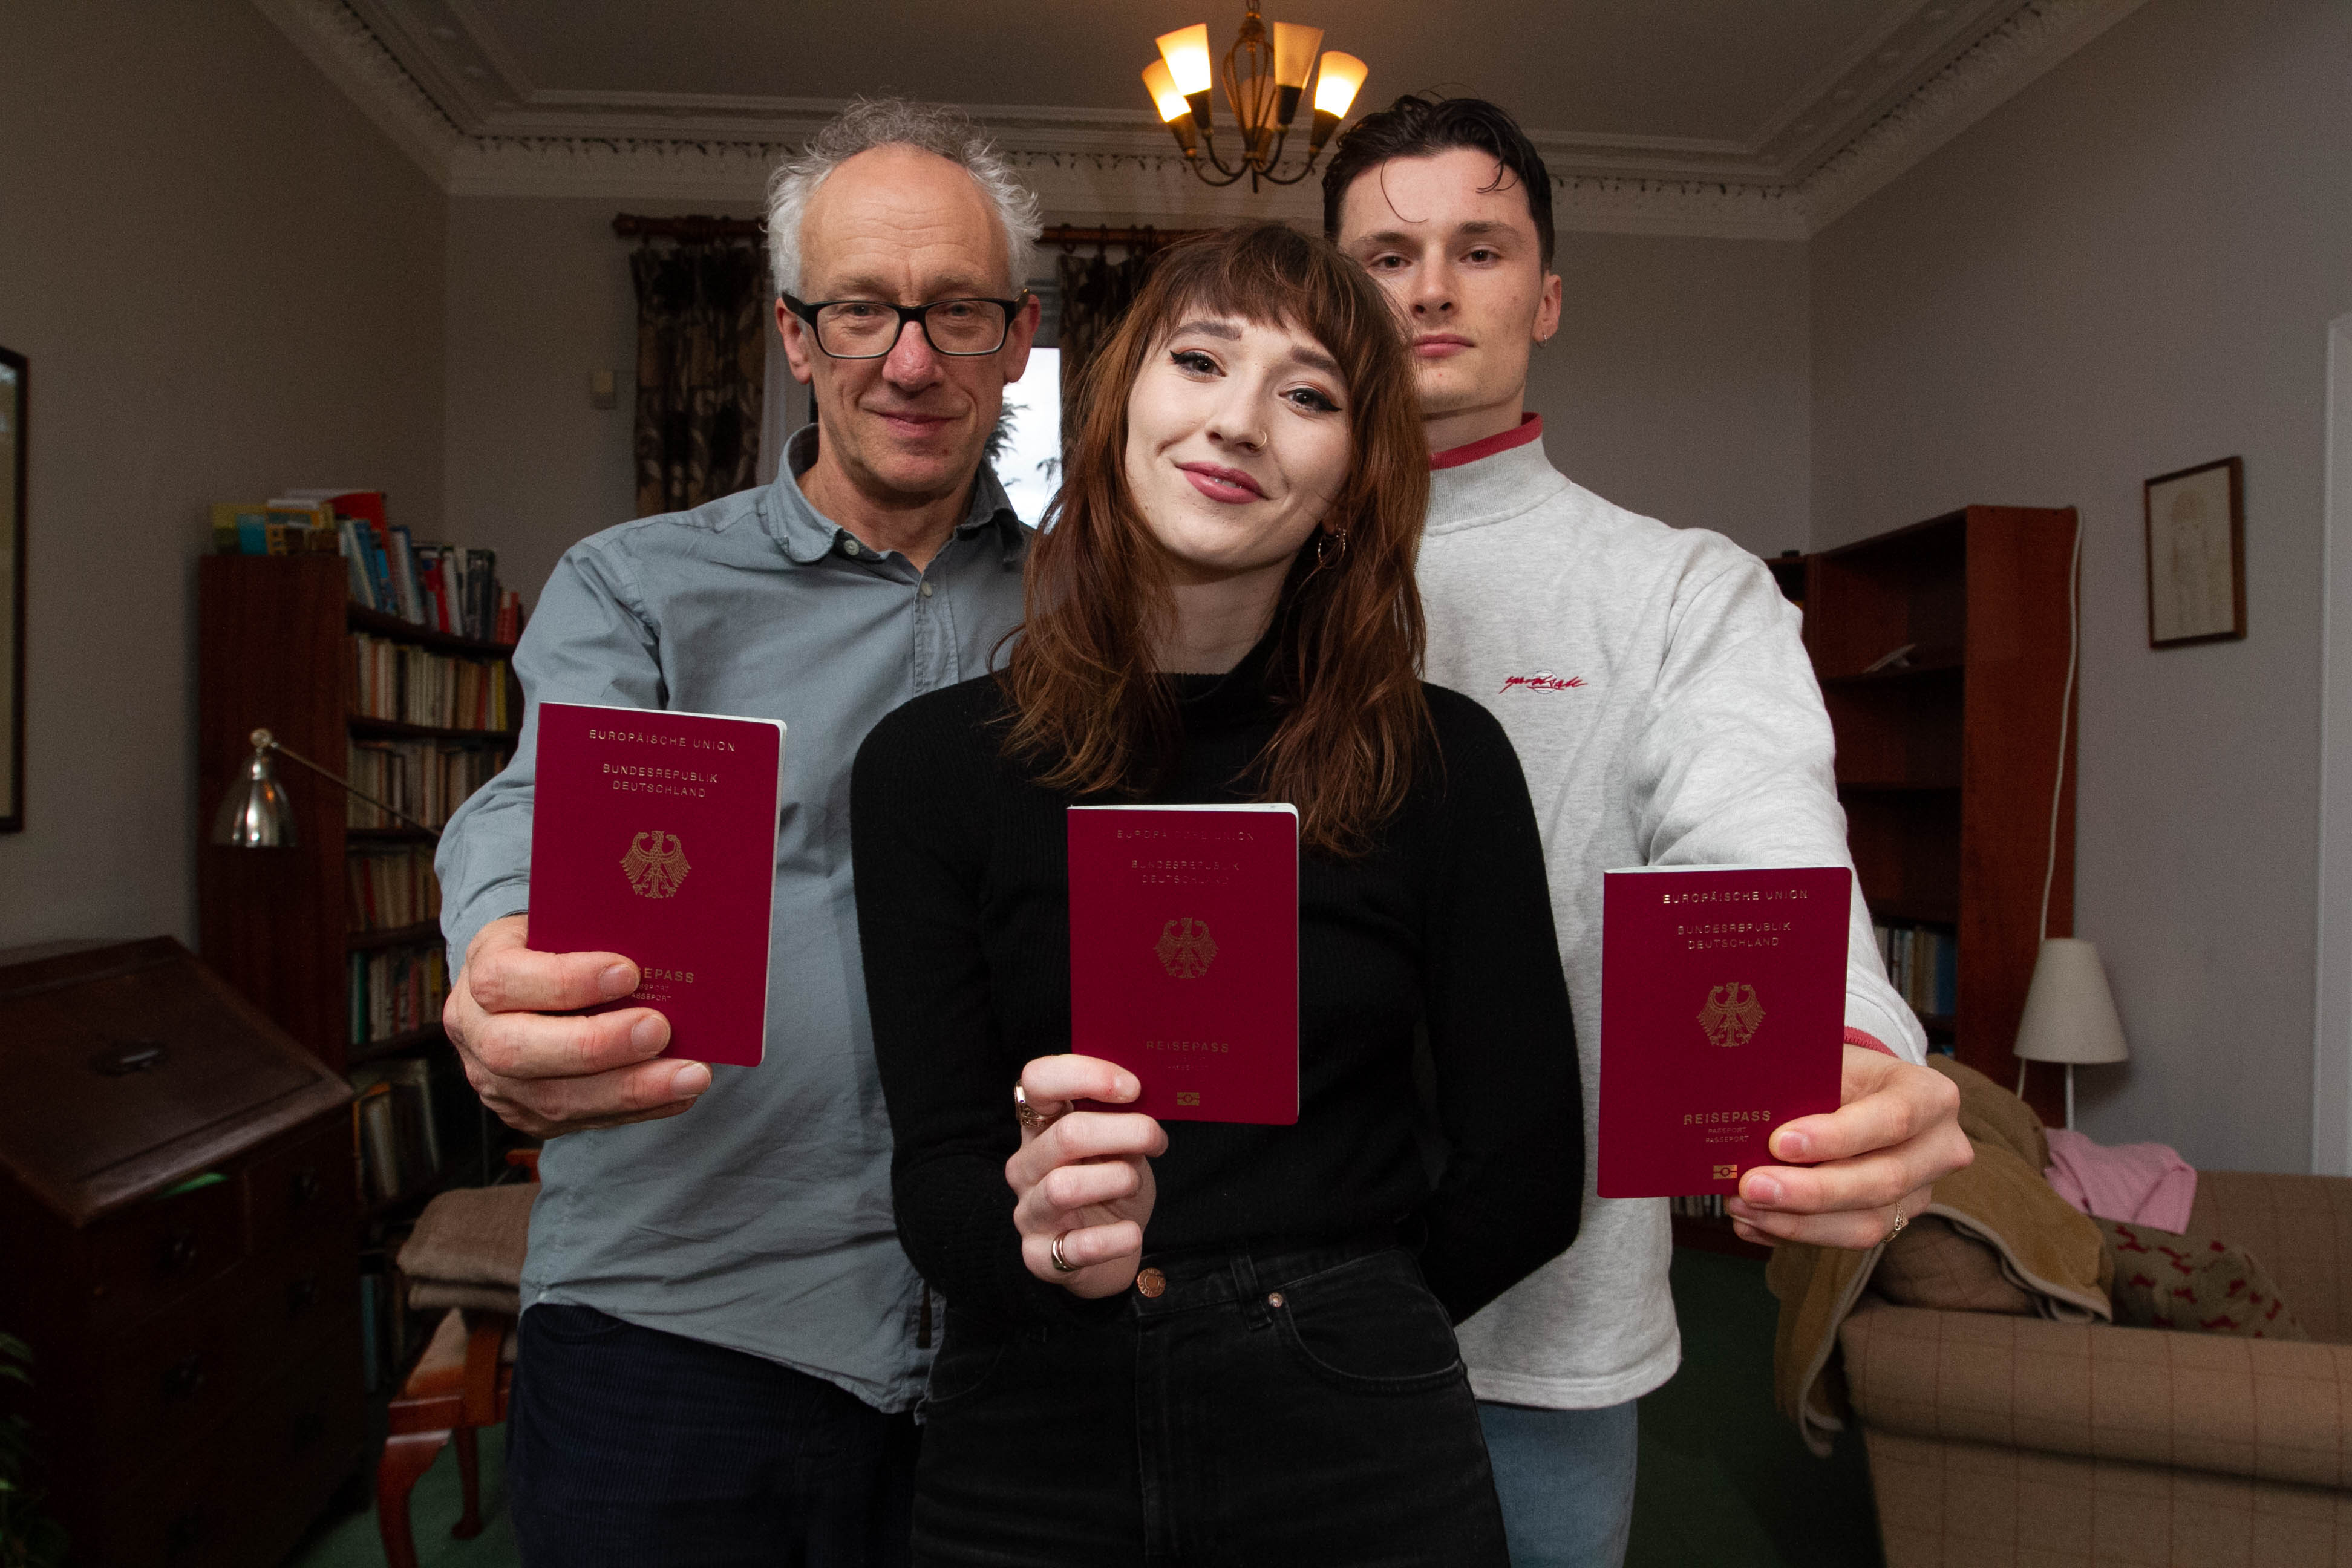 Bob Leiser's family have got German Passports ahead of Brexit